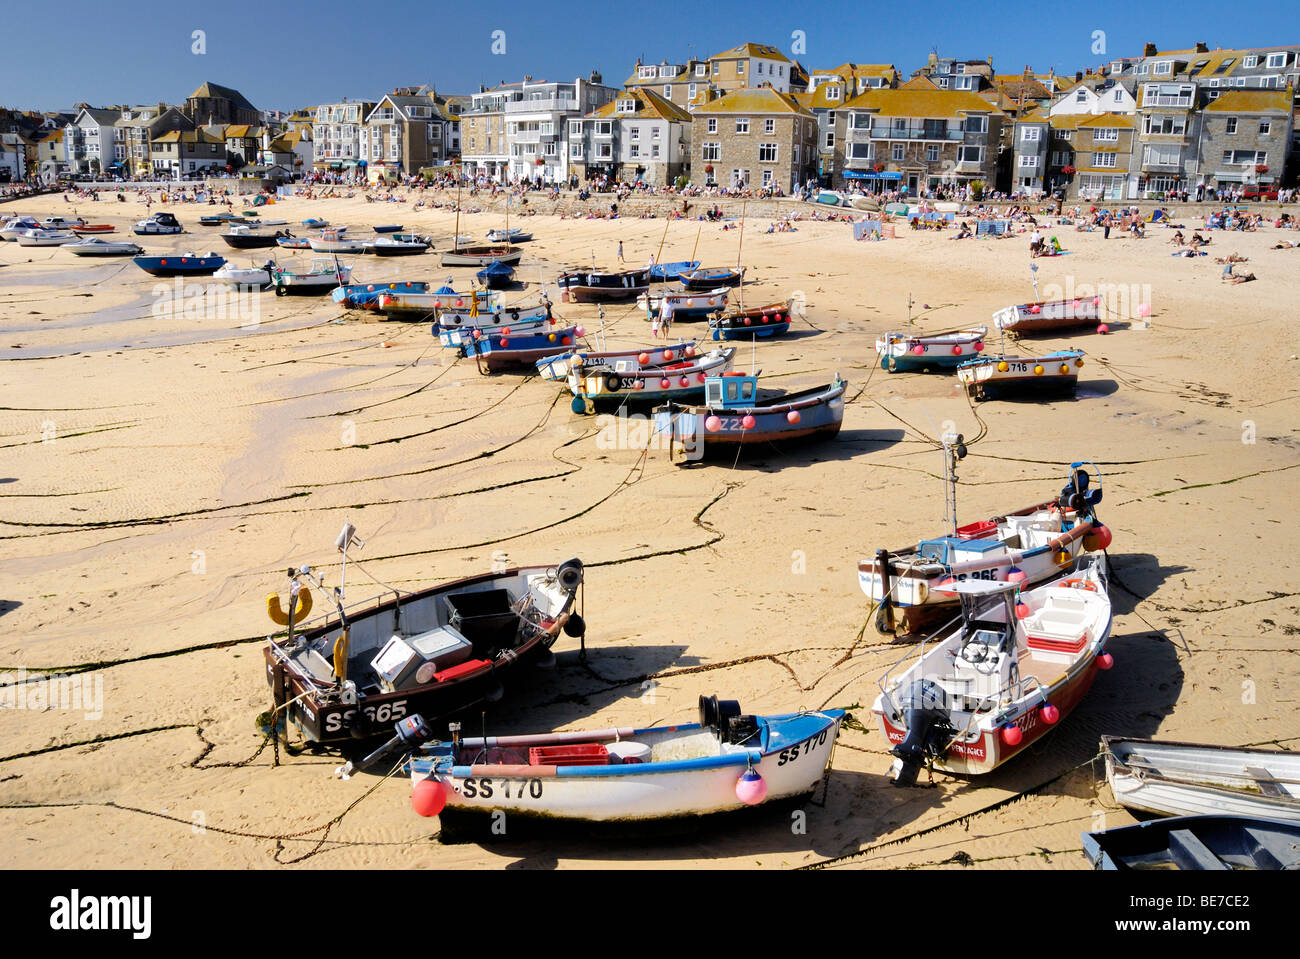 Fishing boats beached on the sand in a harbour at low tide Stock Photo